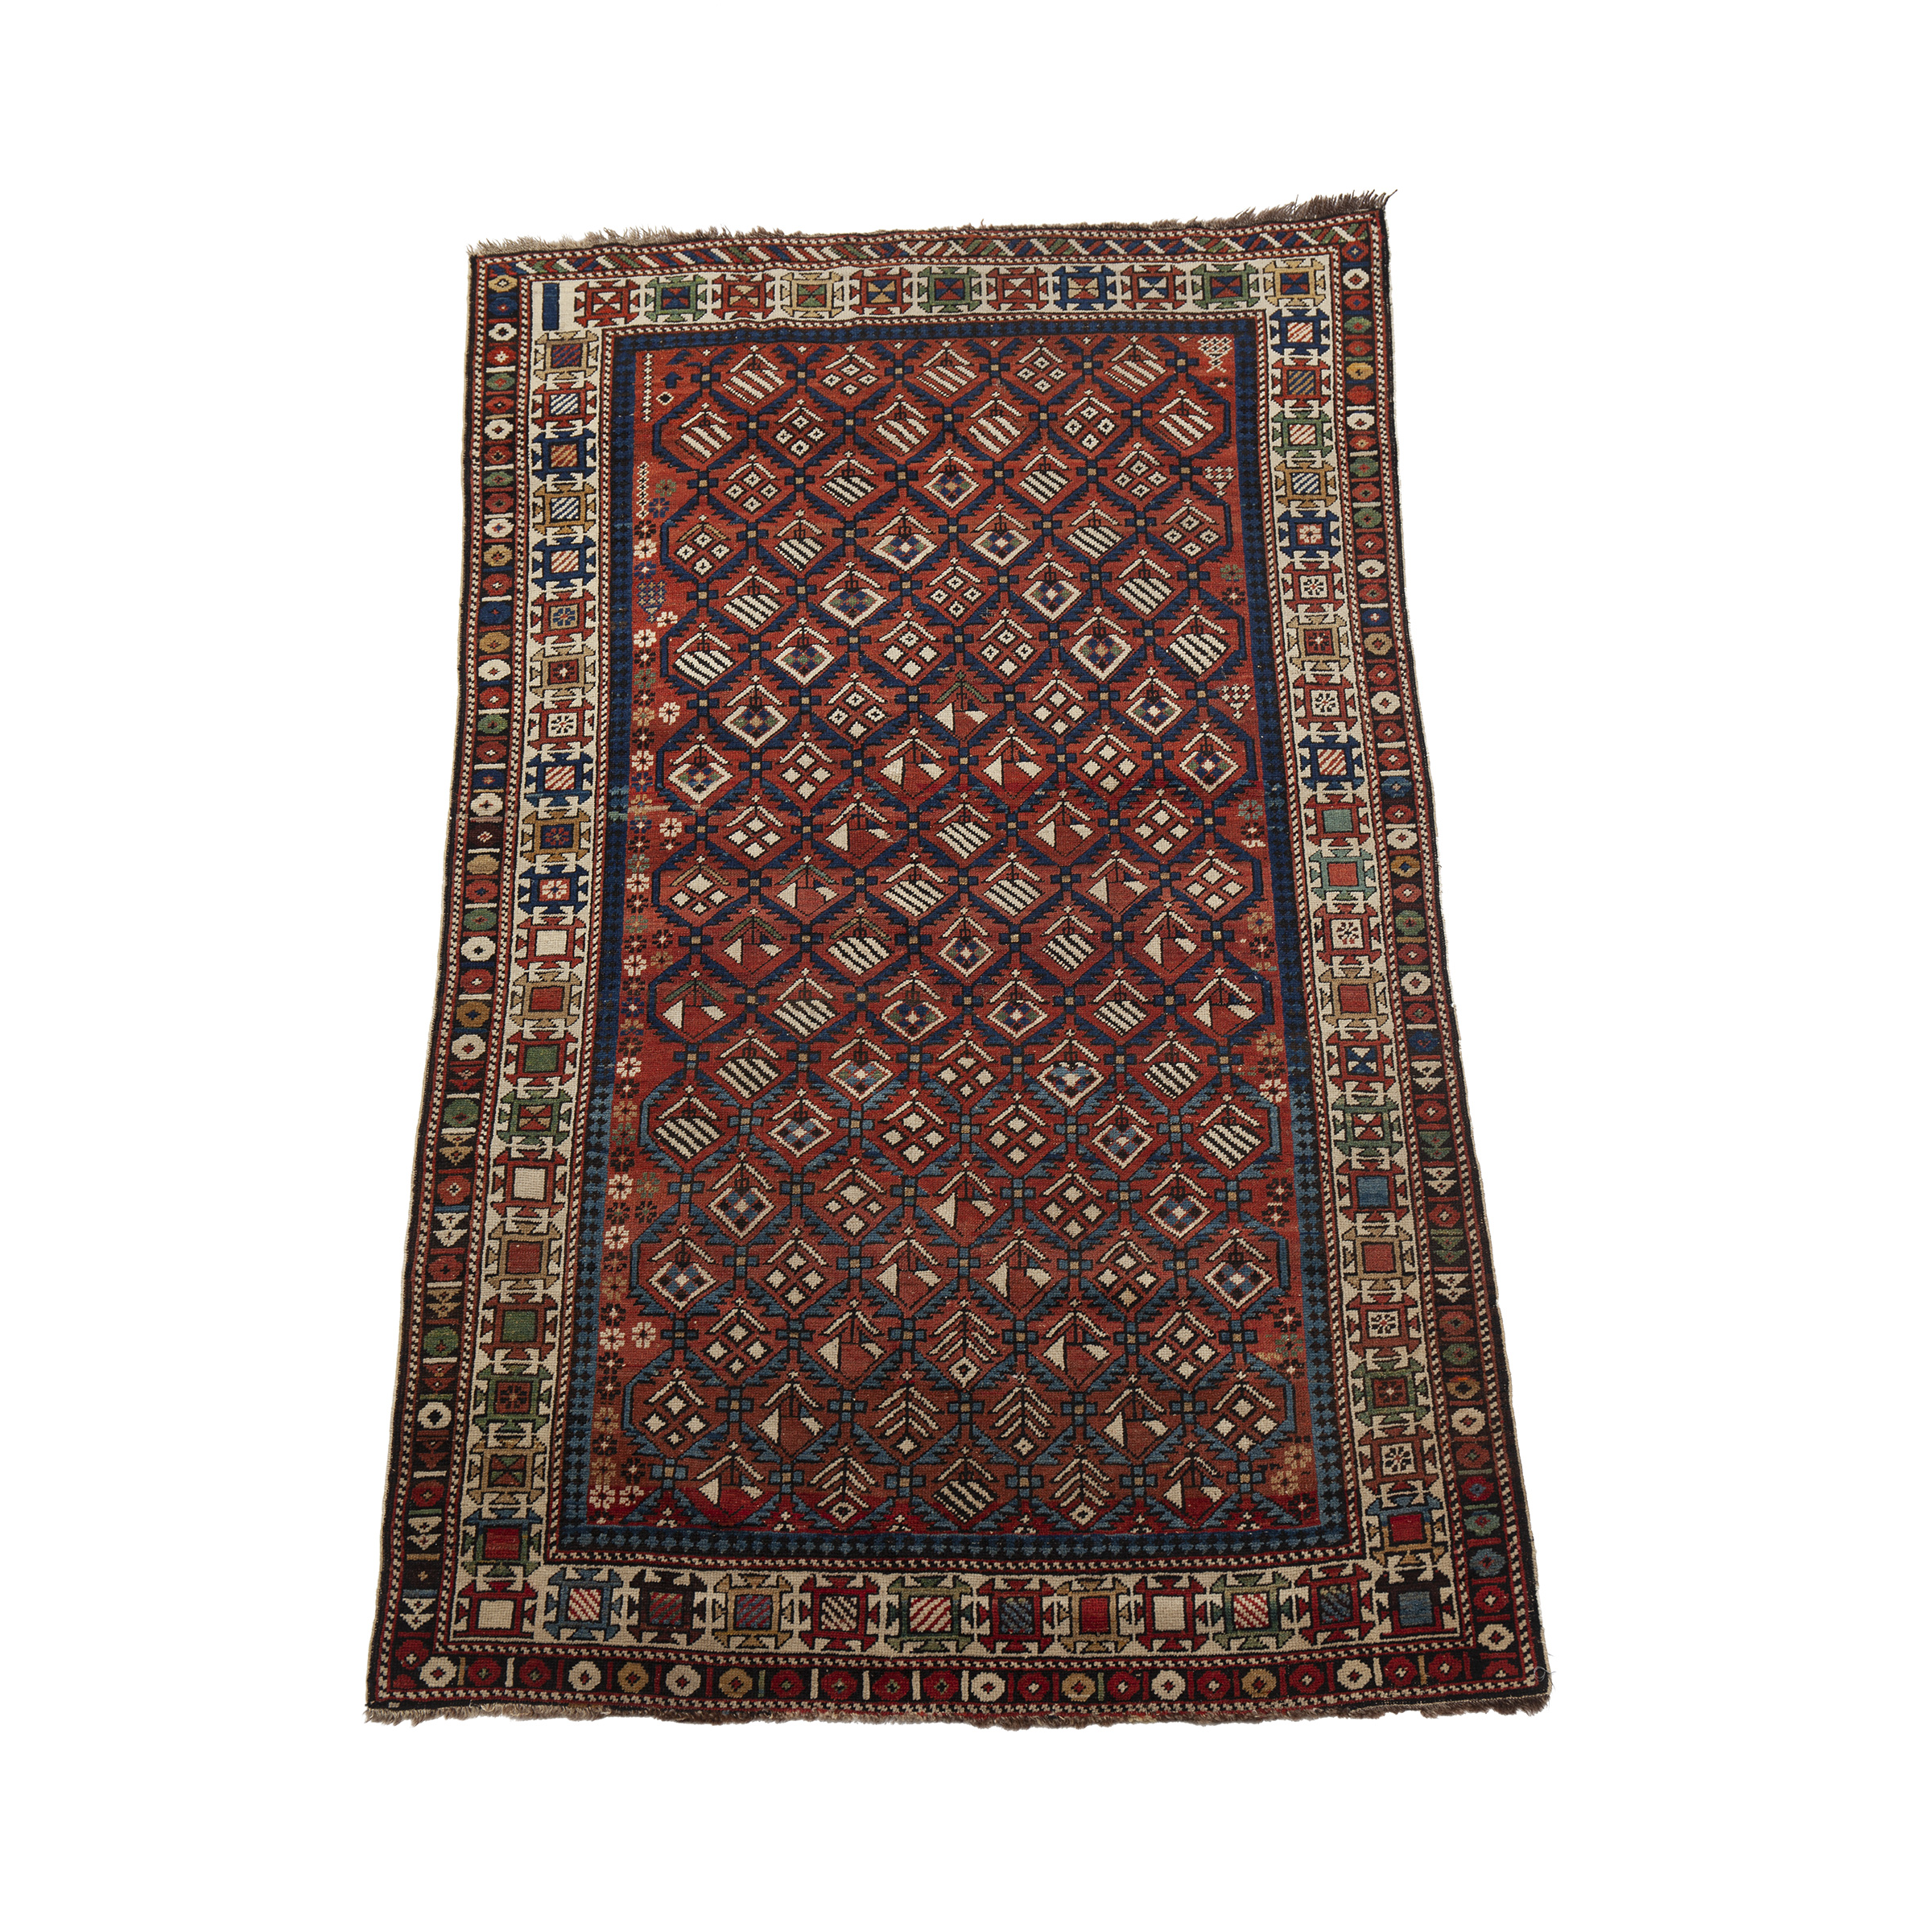 Shirvan Rug, Caucasian, early 20th century